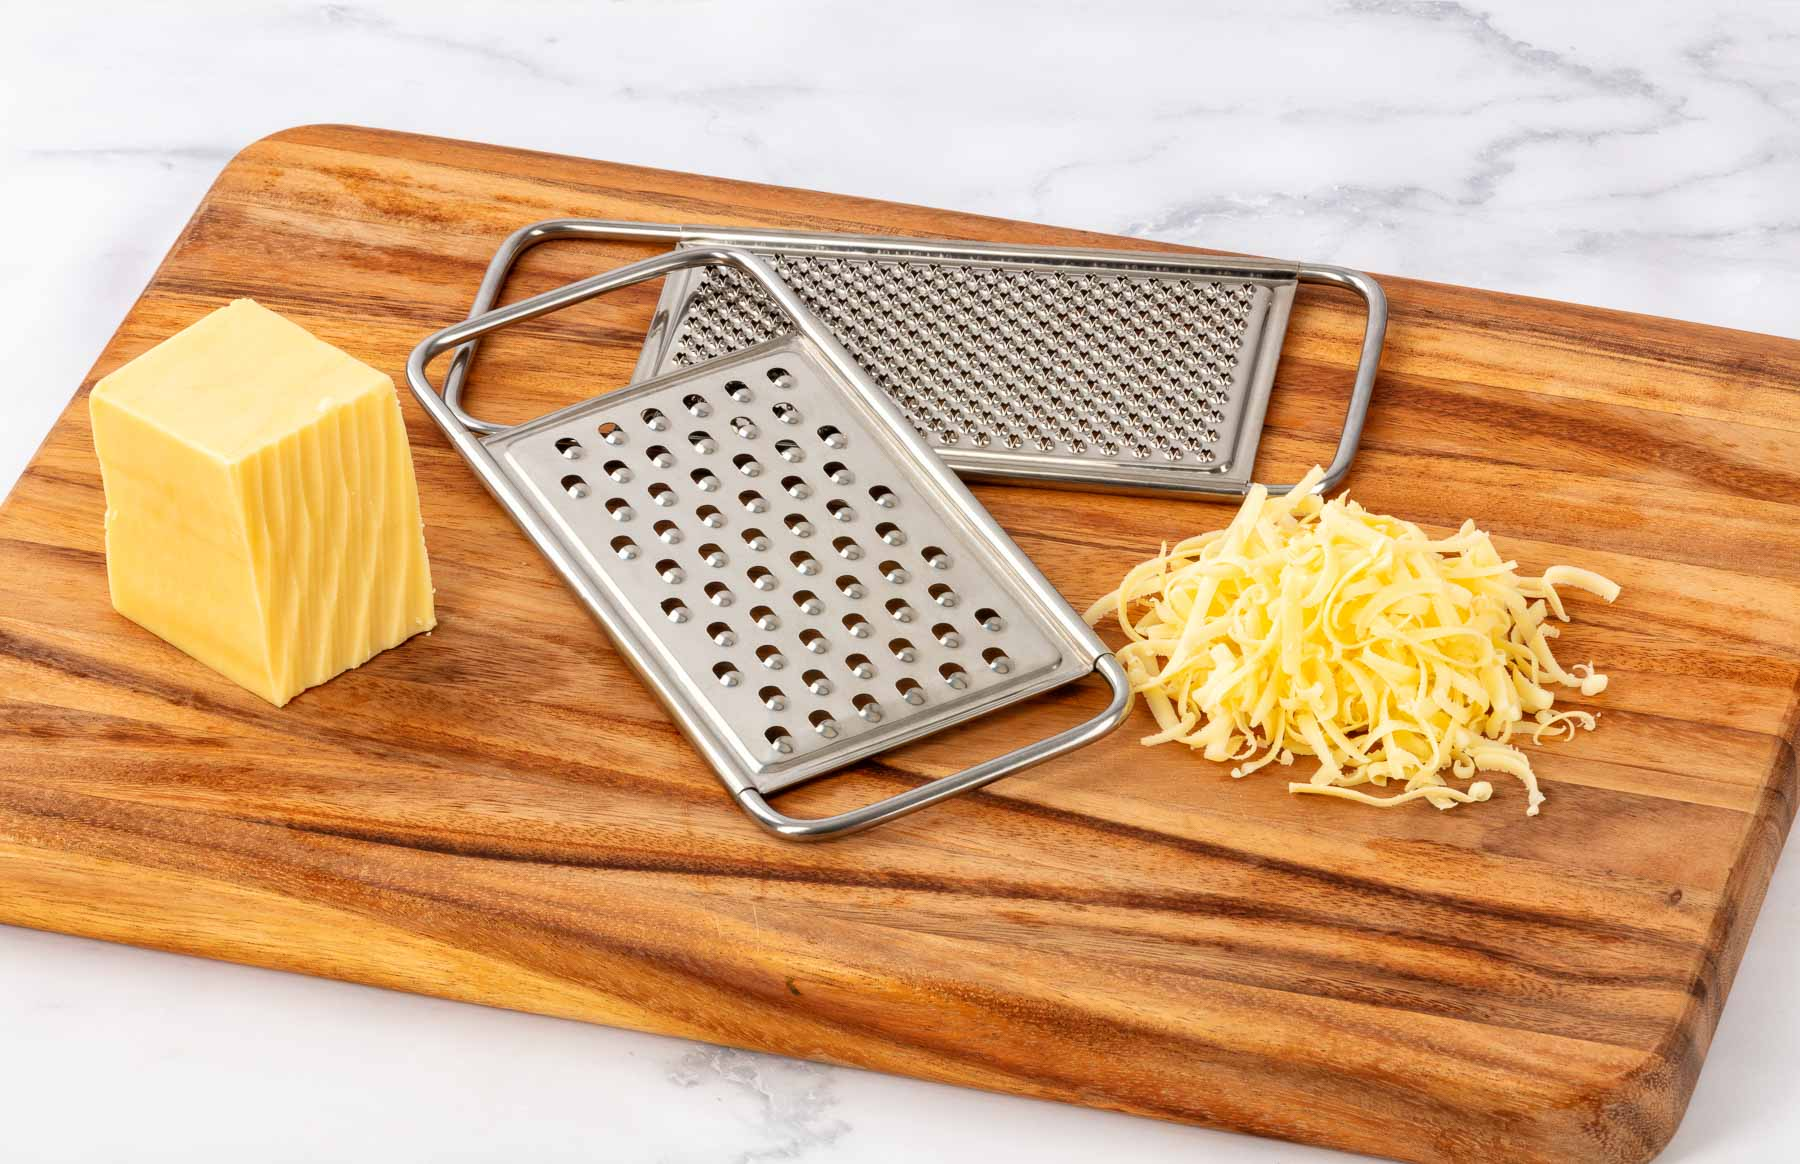 Forever Sharp-Cheese grater on timber board - lifestyle product photography